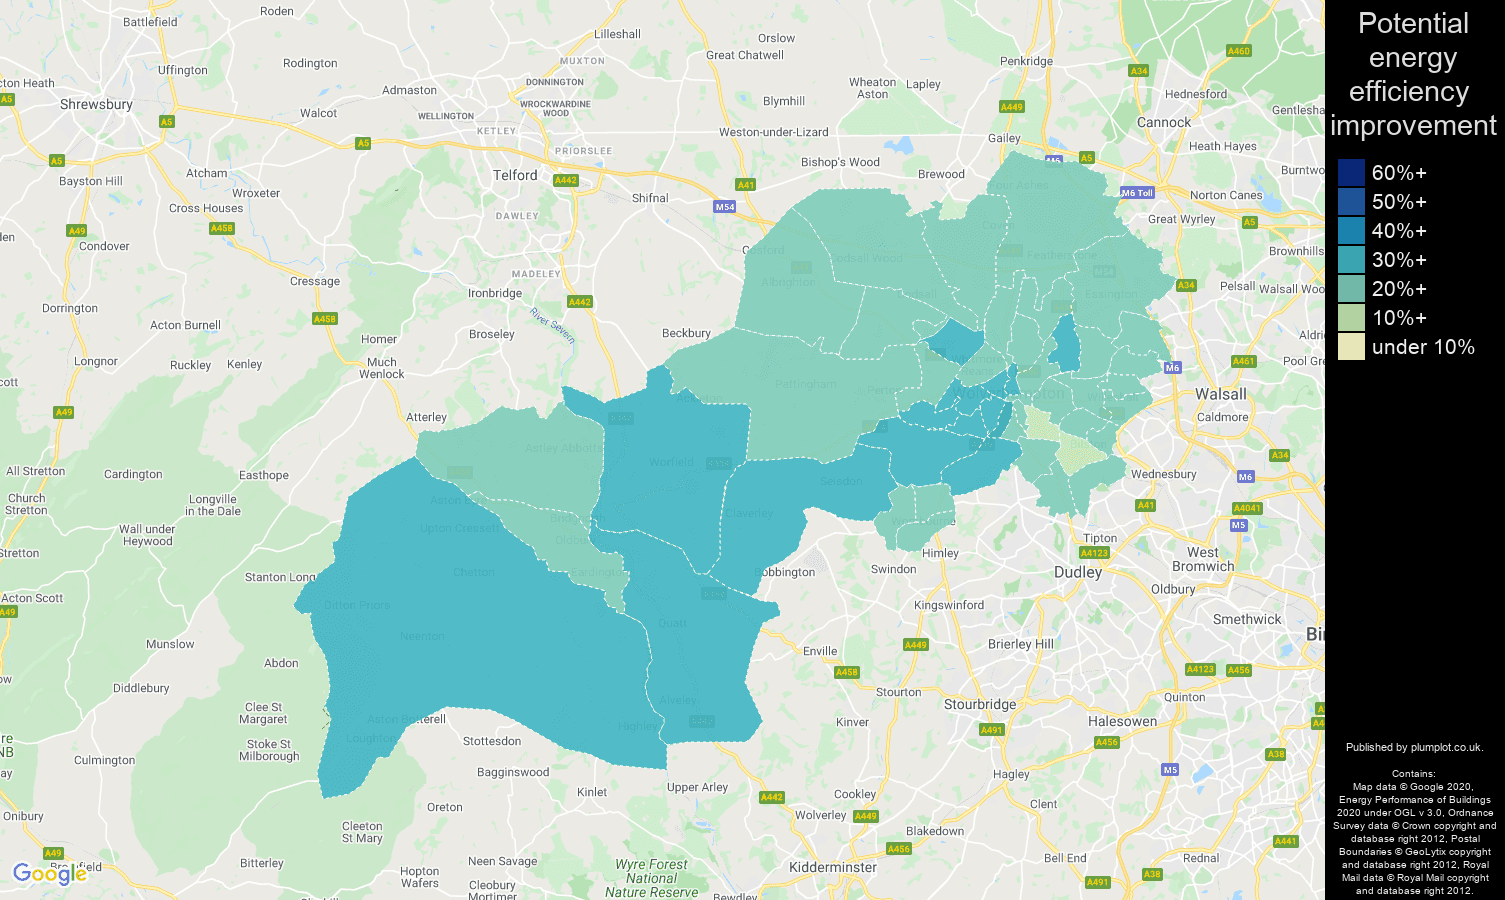 Wolverhampton map of potential energy efficiency improvement of houses